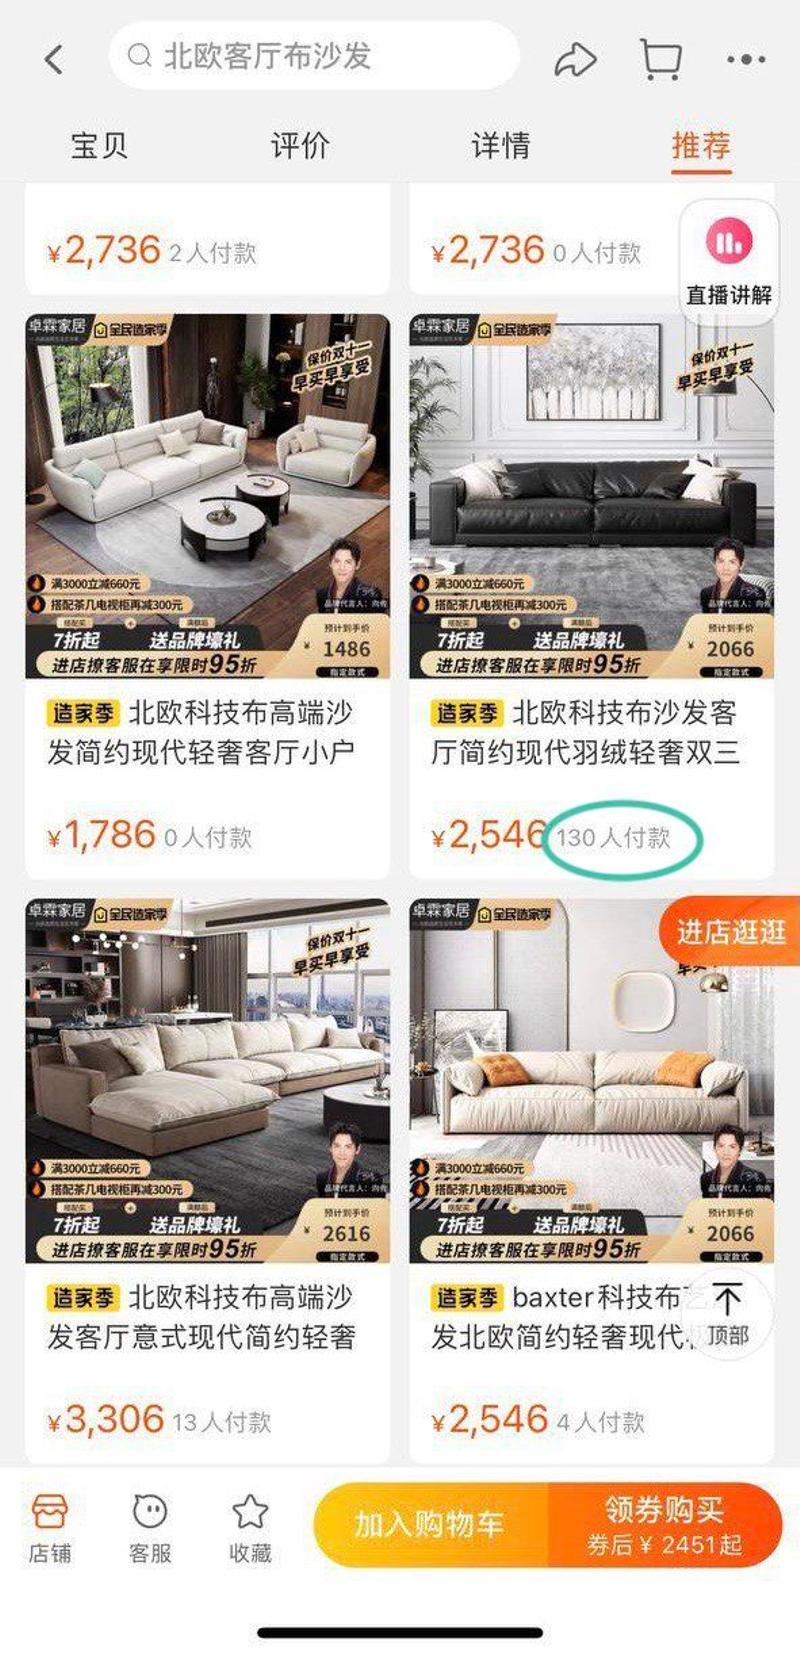 how to buy and ship furniture from taobao